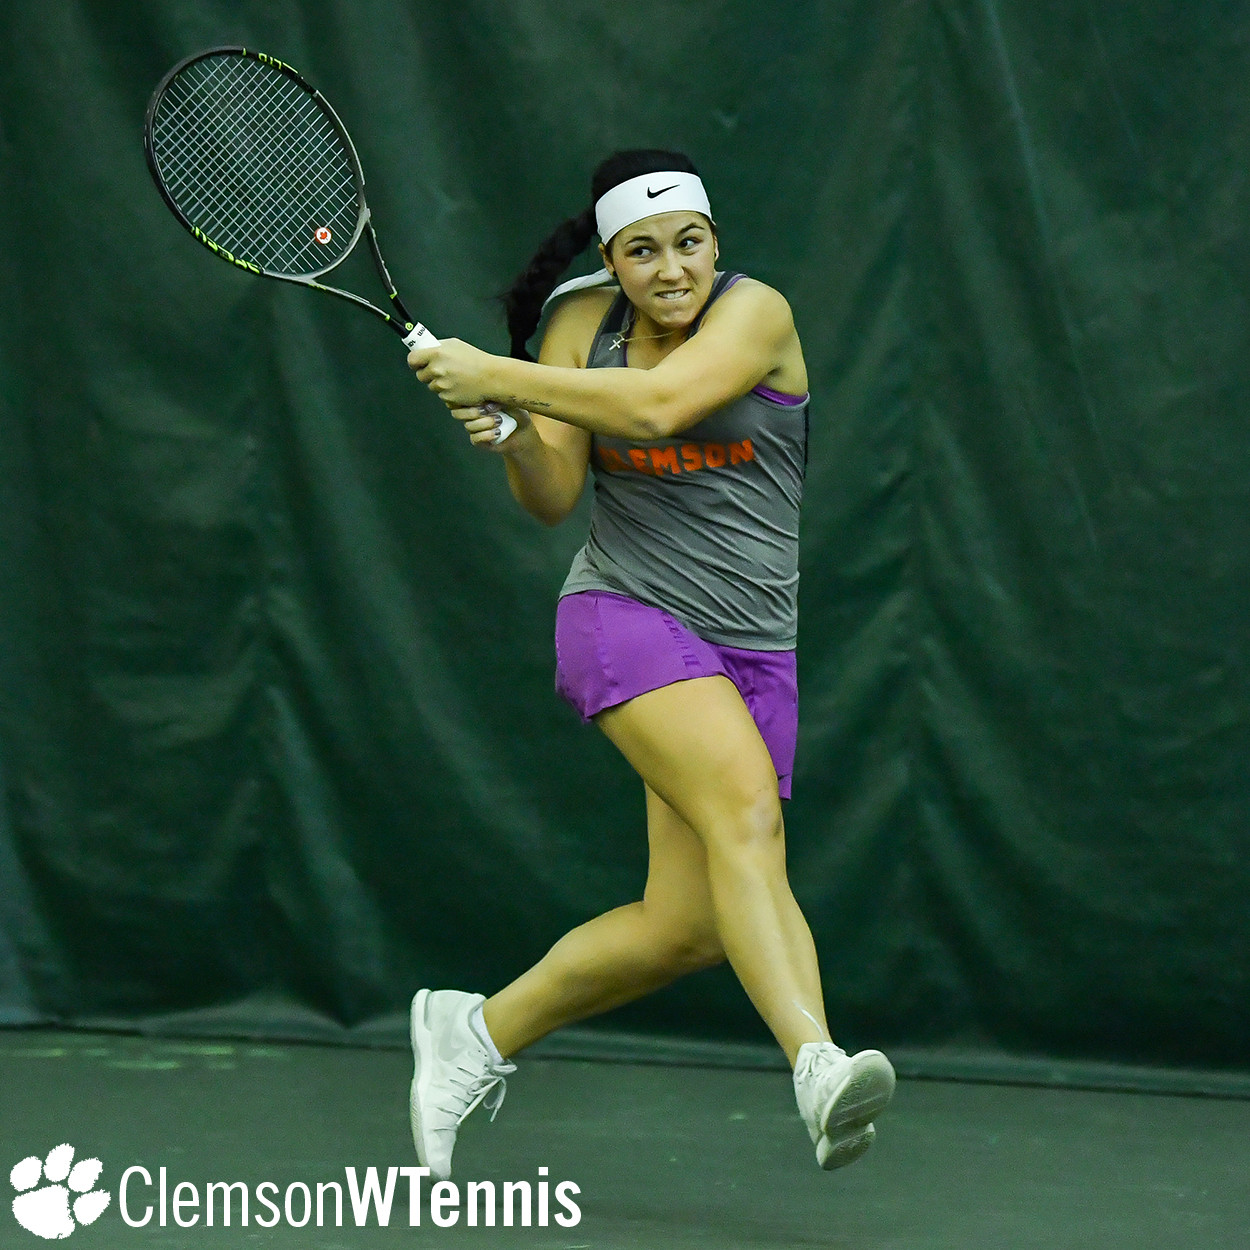 Leduc Earns Singles Upset, but Tigers Fall at NC State Friday